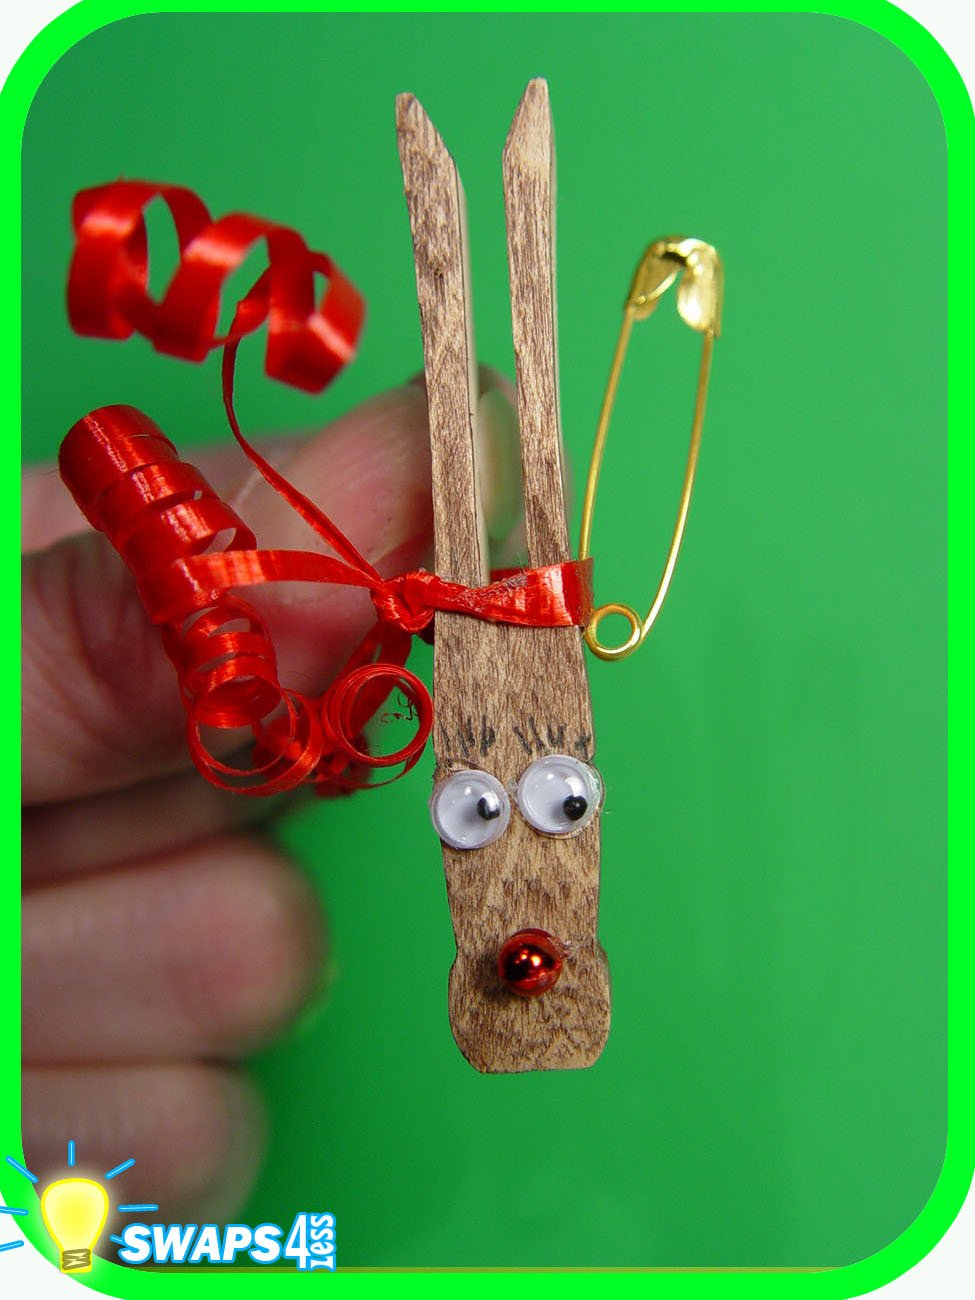 Rudolf The Red Nosed Reindeer Christmas Girl Scout Swaps Craft Kit